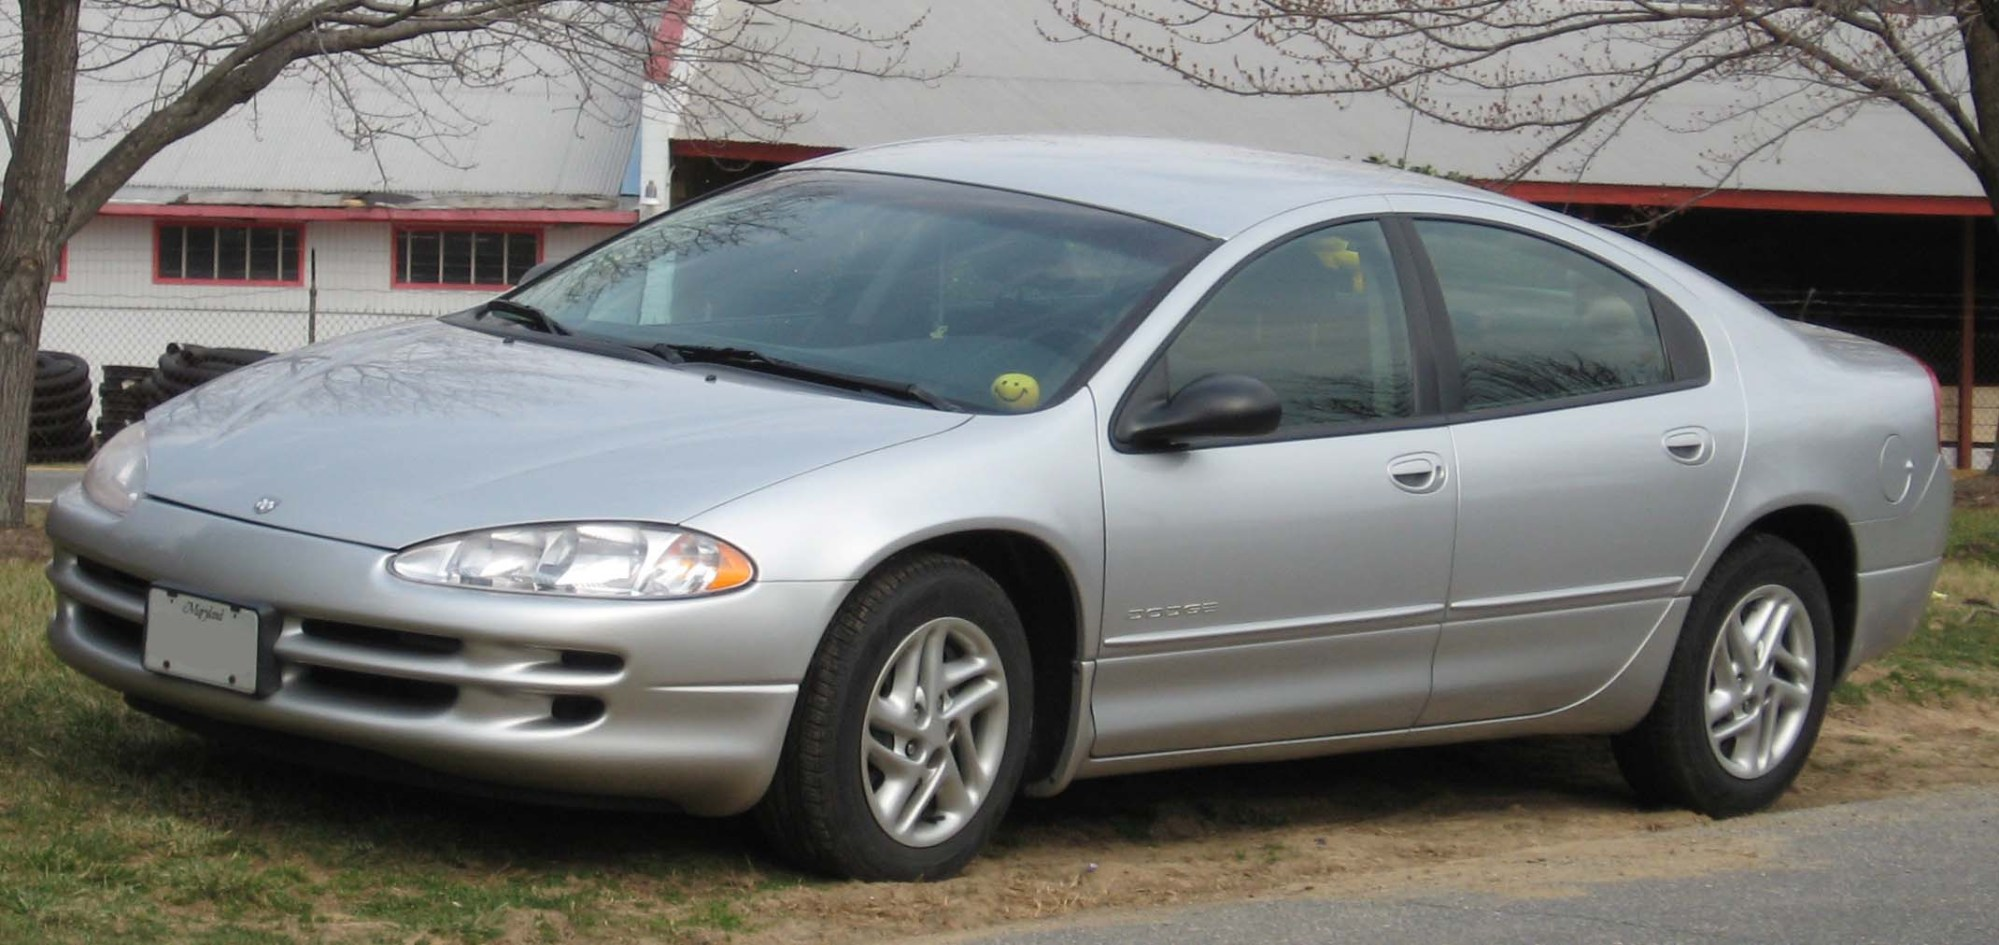 hight resolution of 1996 dodge intrepid base photo 1